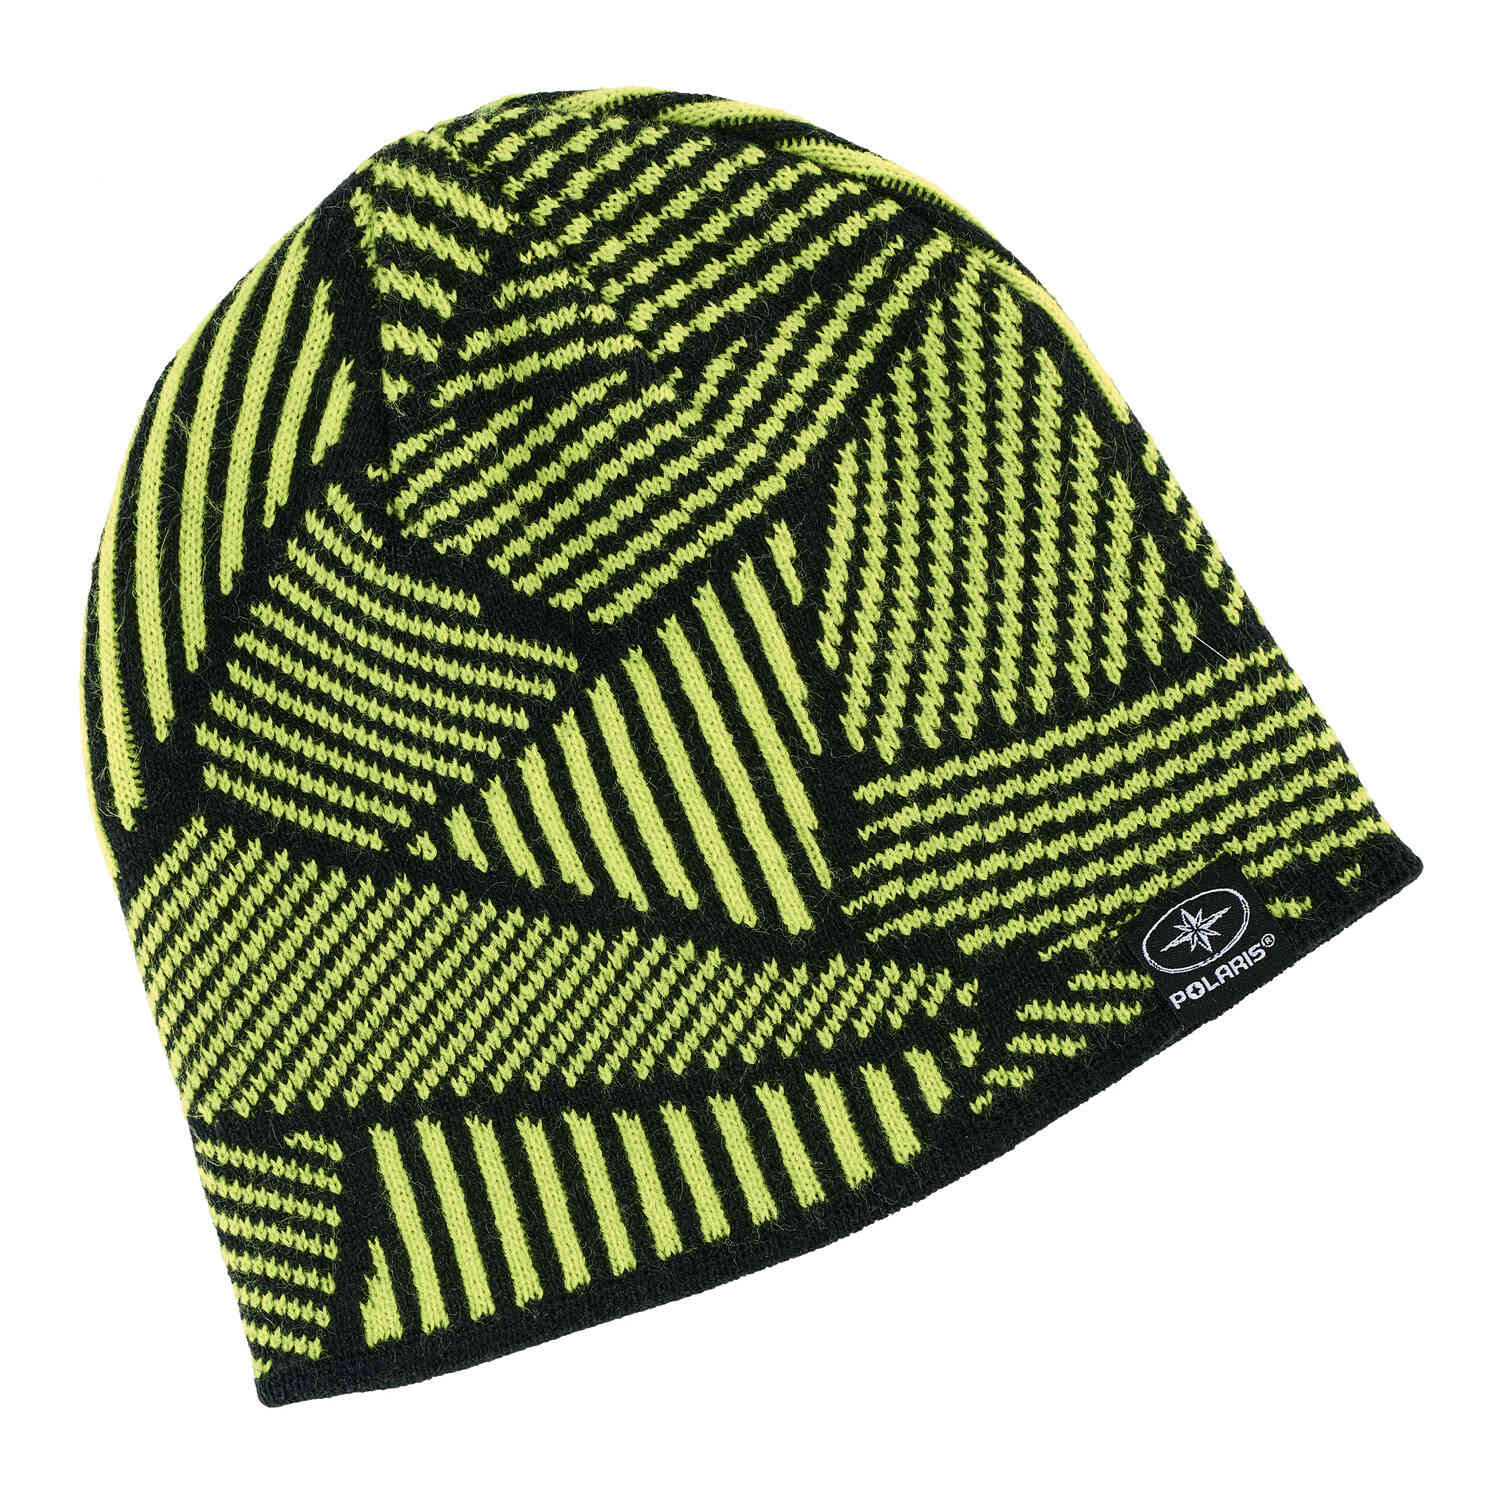 Youth Jersey Knit Reversible Beanie, Lime